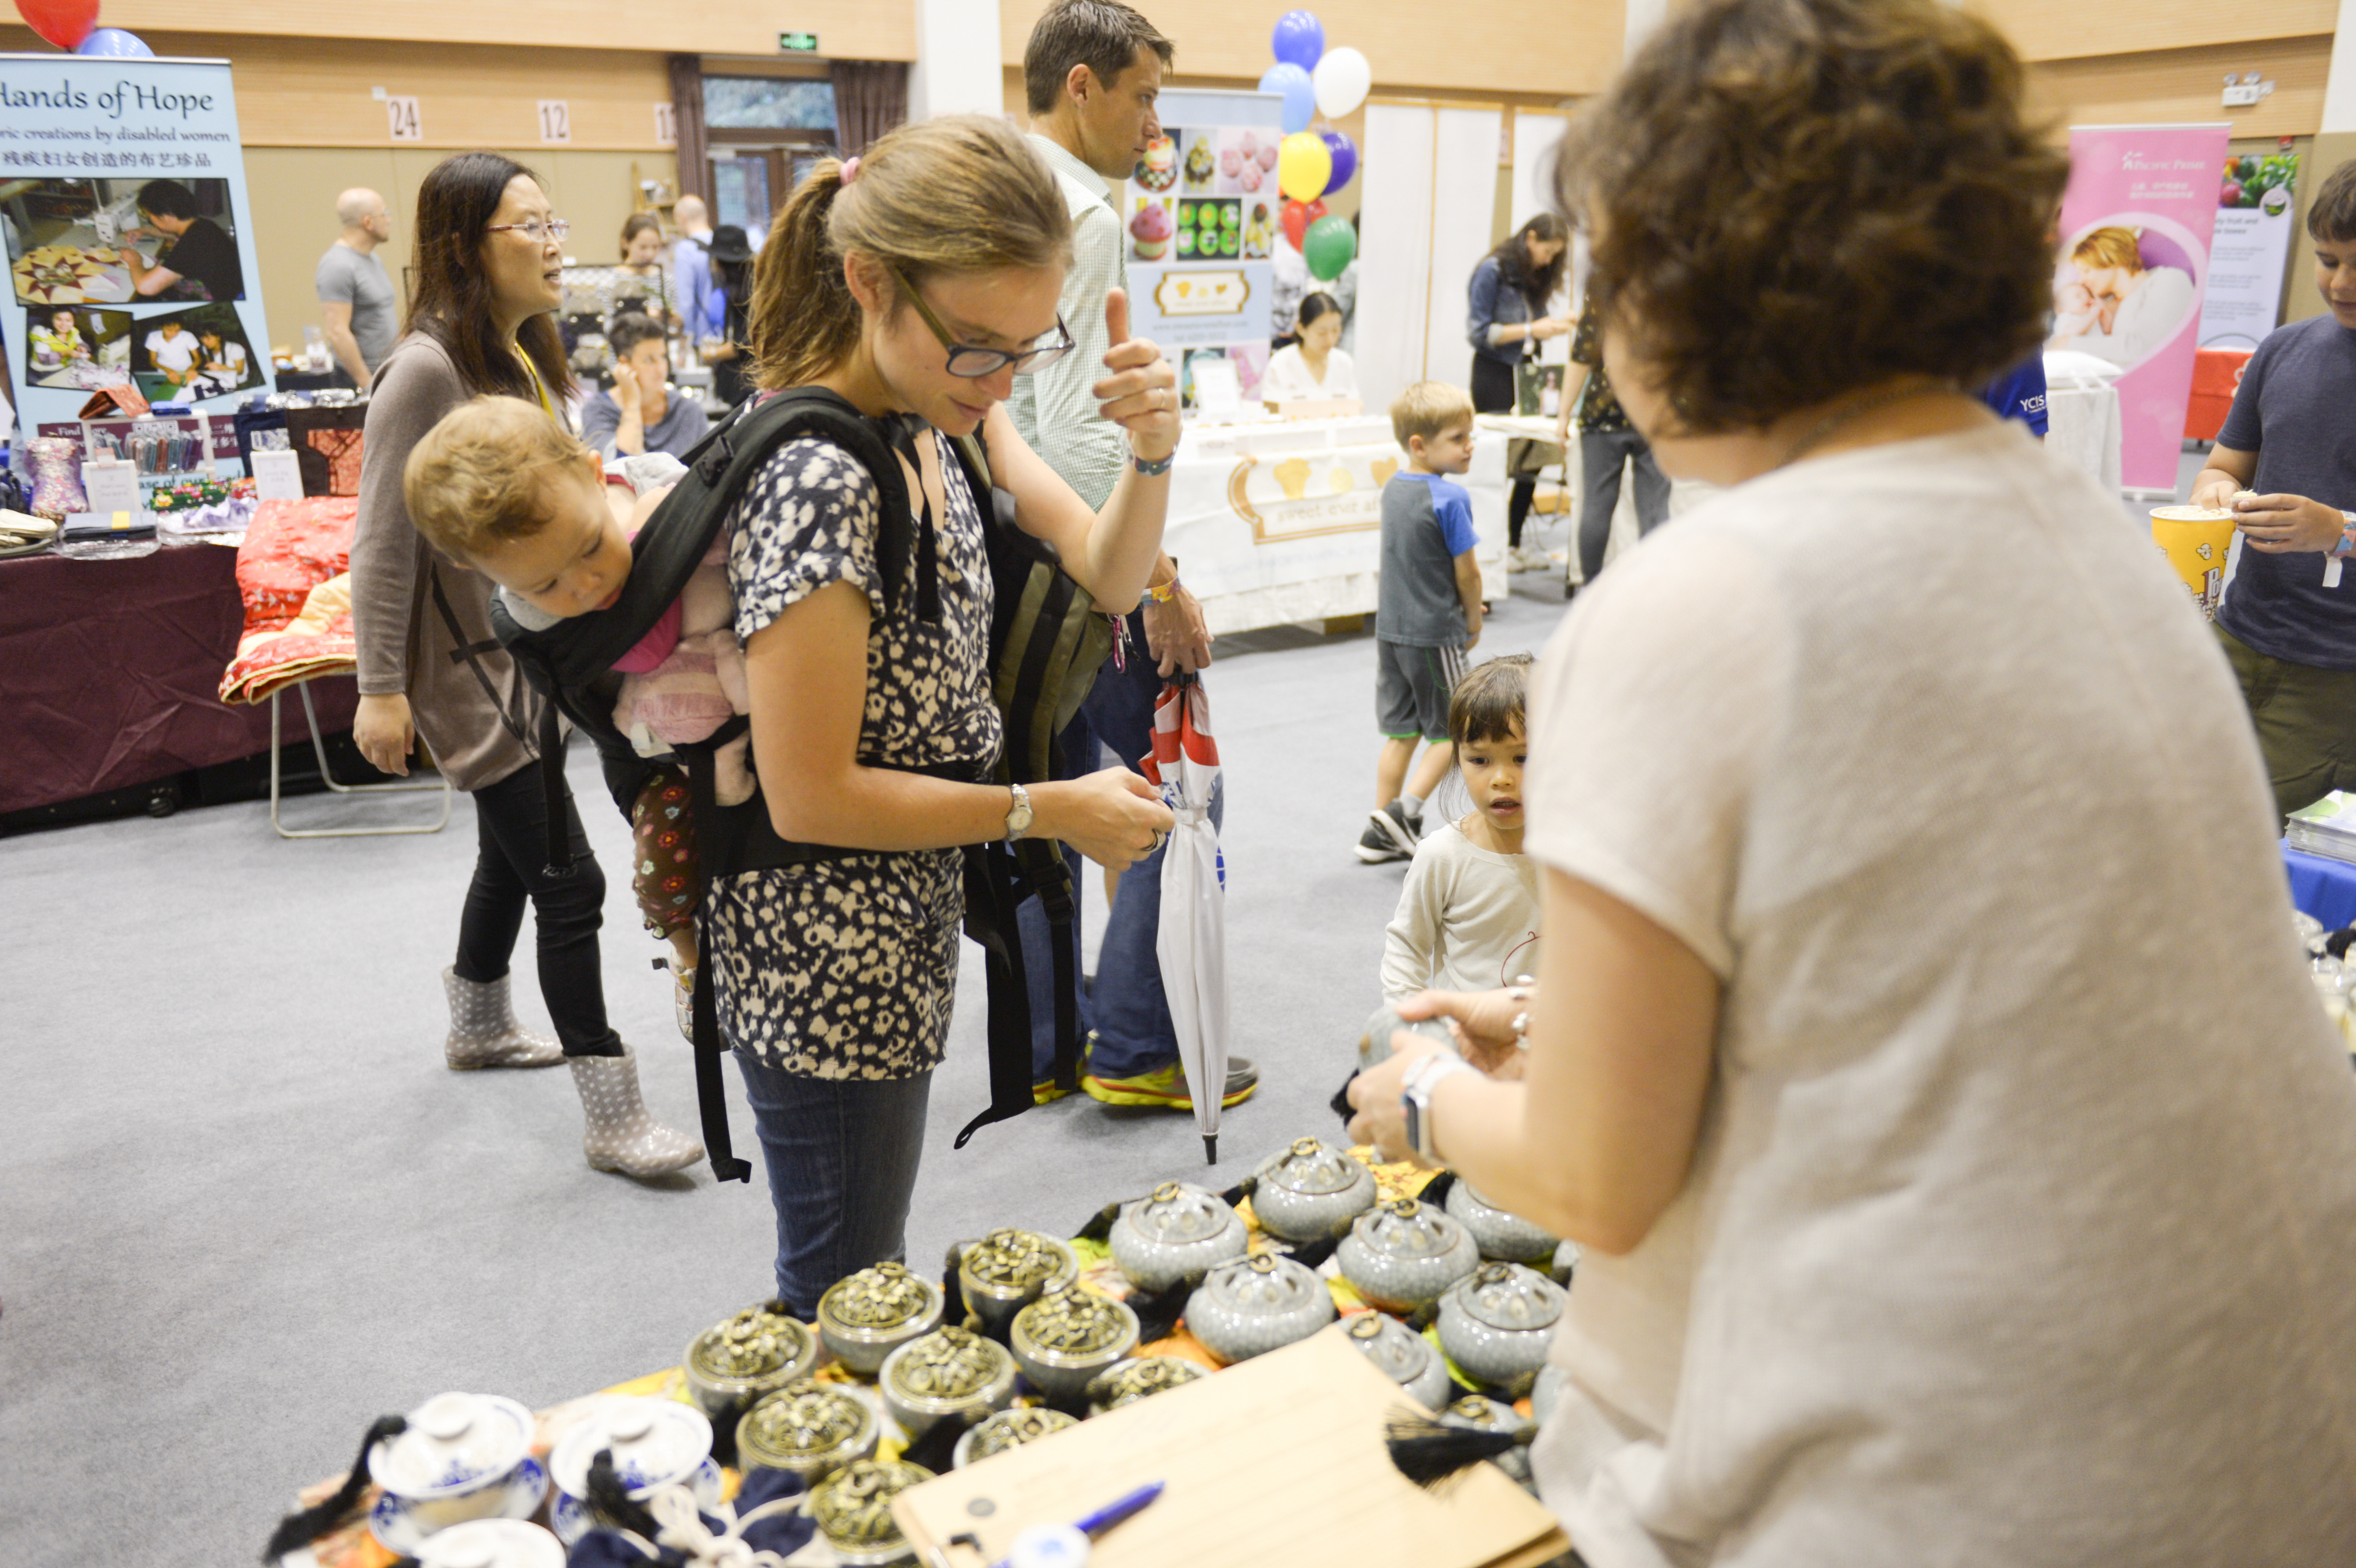 Families check out vendors and stalls at the event